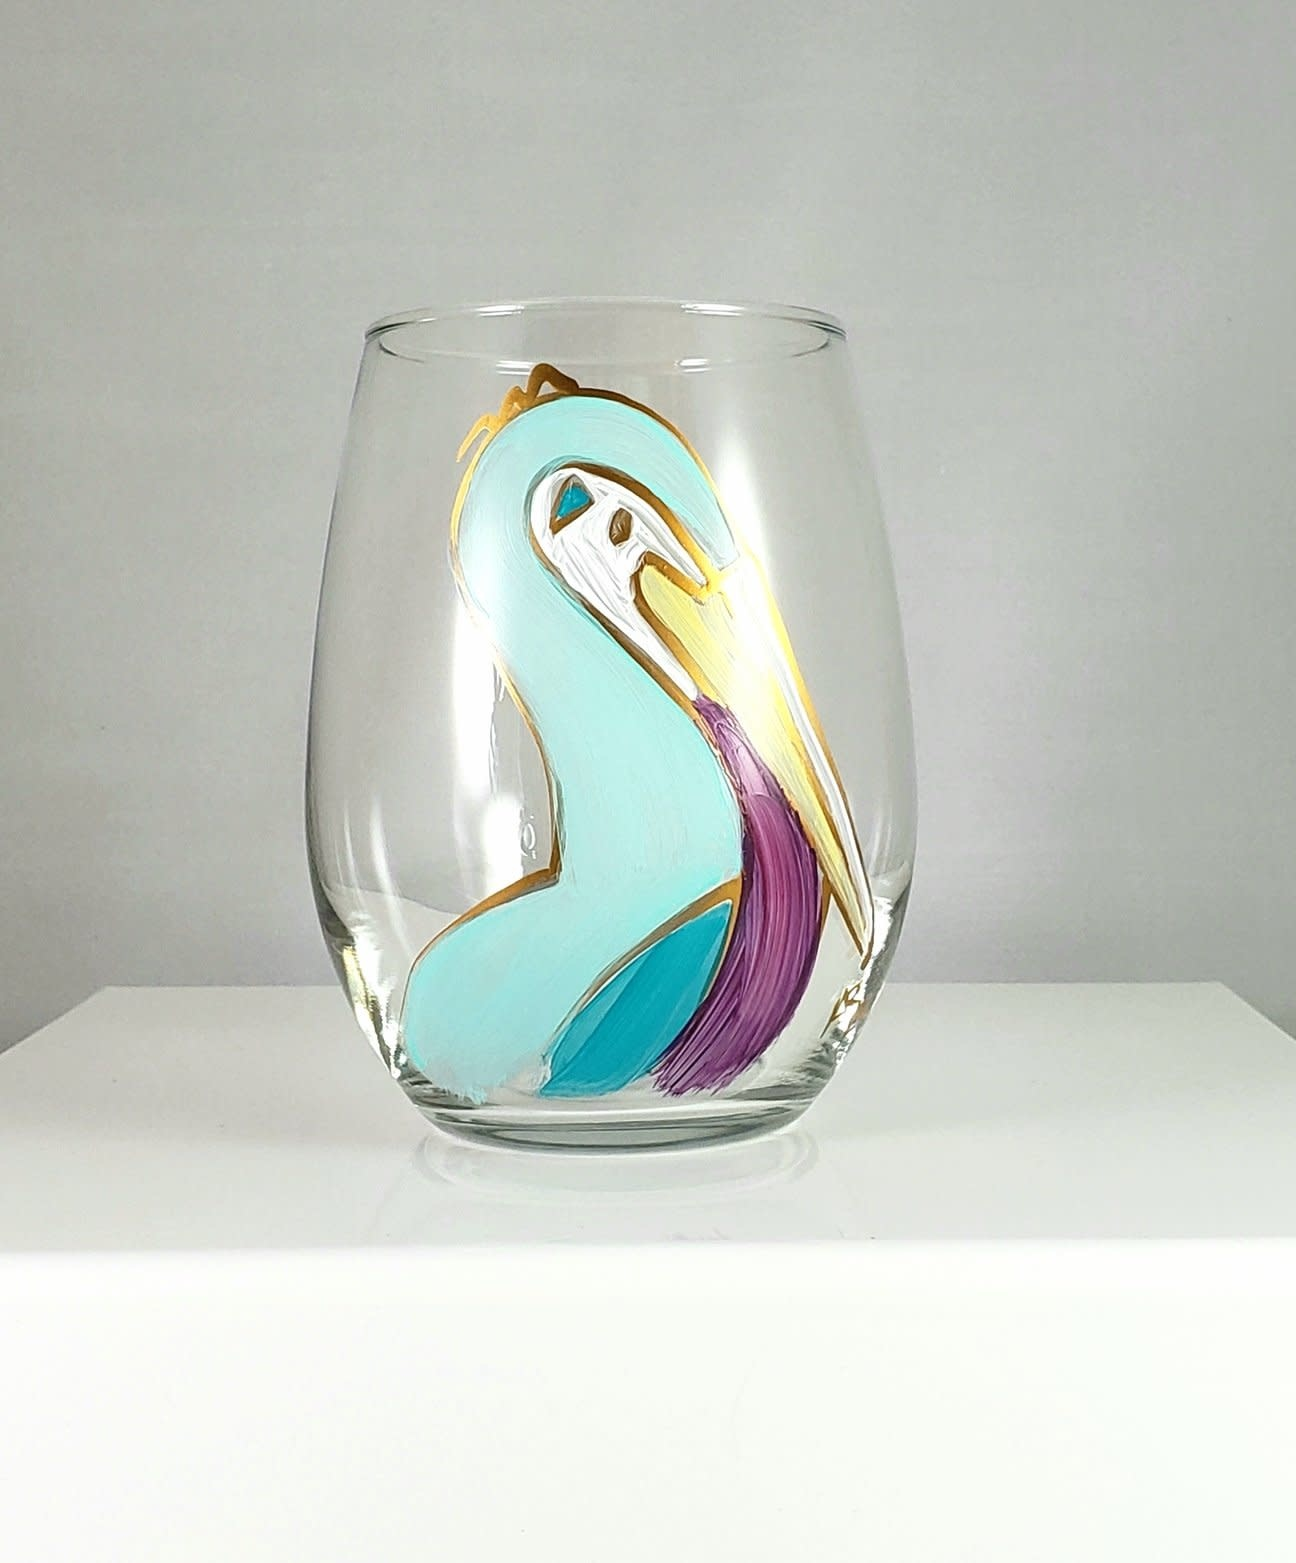 318 Art & Garden Blue Pelican Stemless Wine Glass